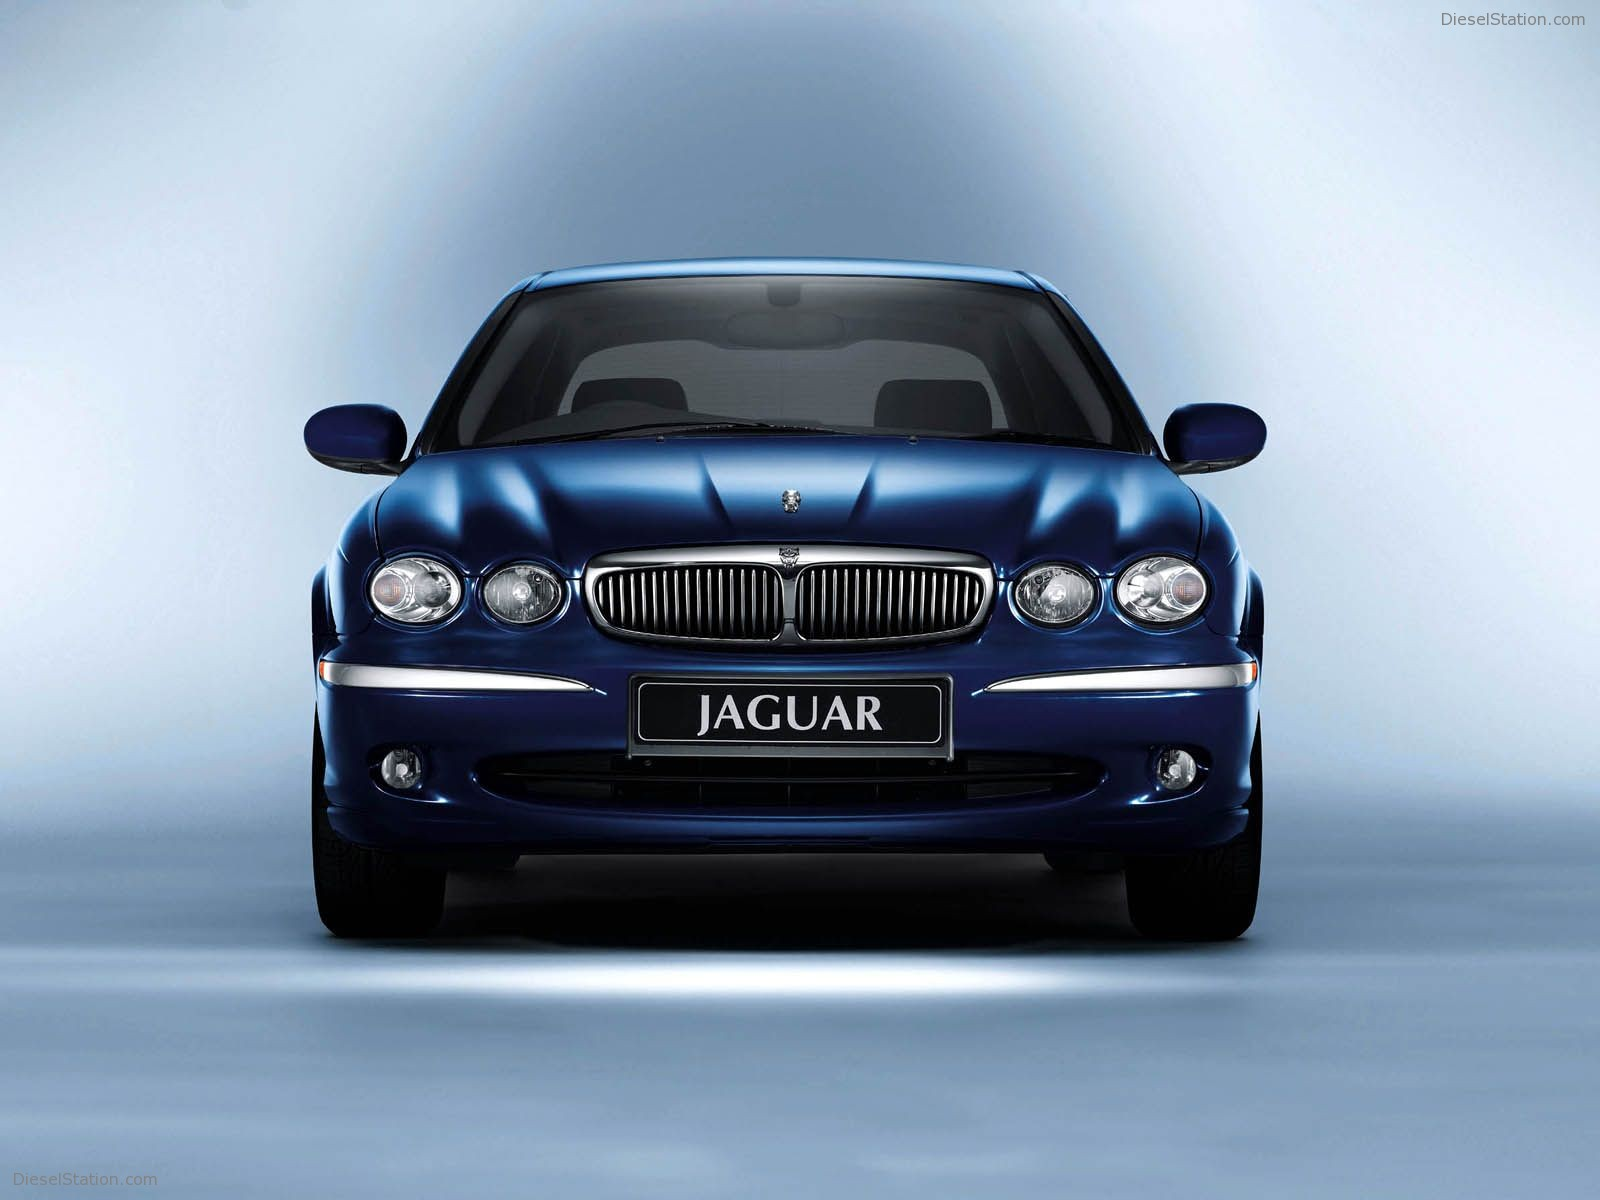 2008 Jaguar X-Type 28 Background Wallpaper